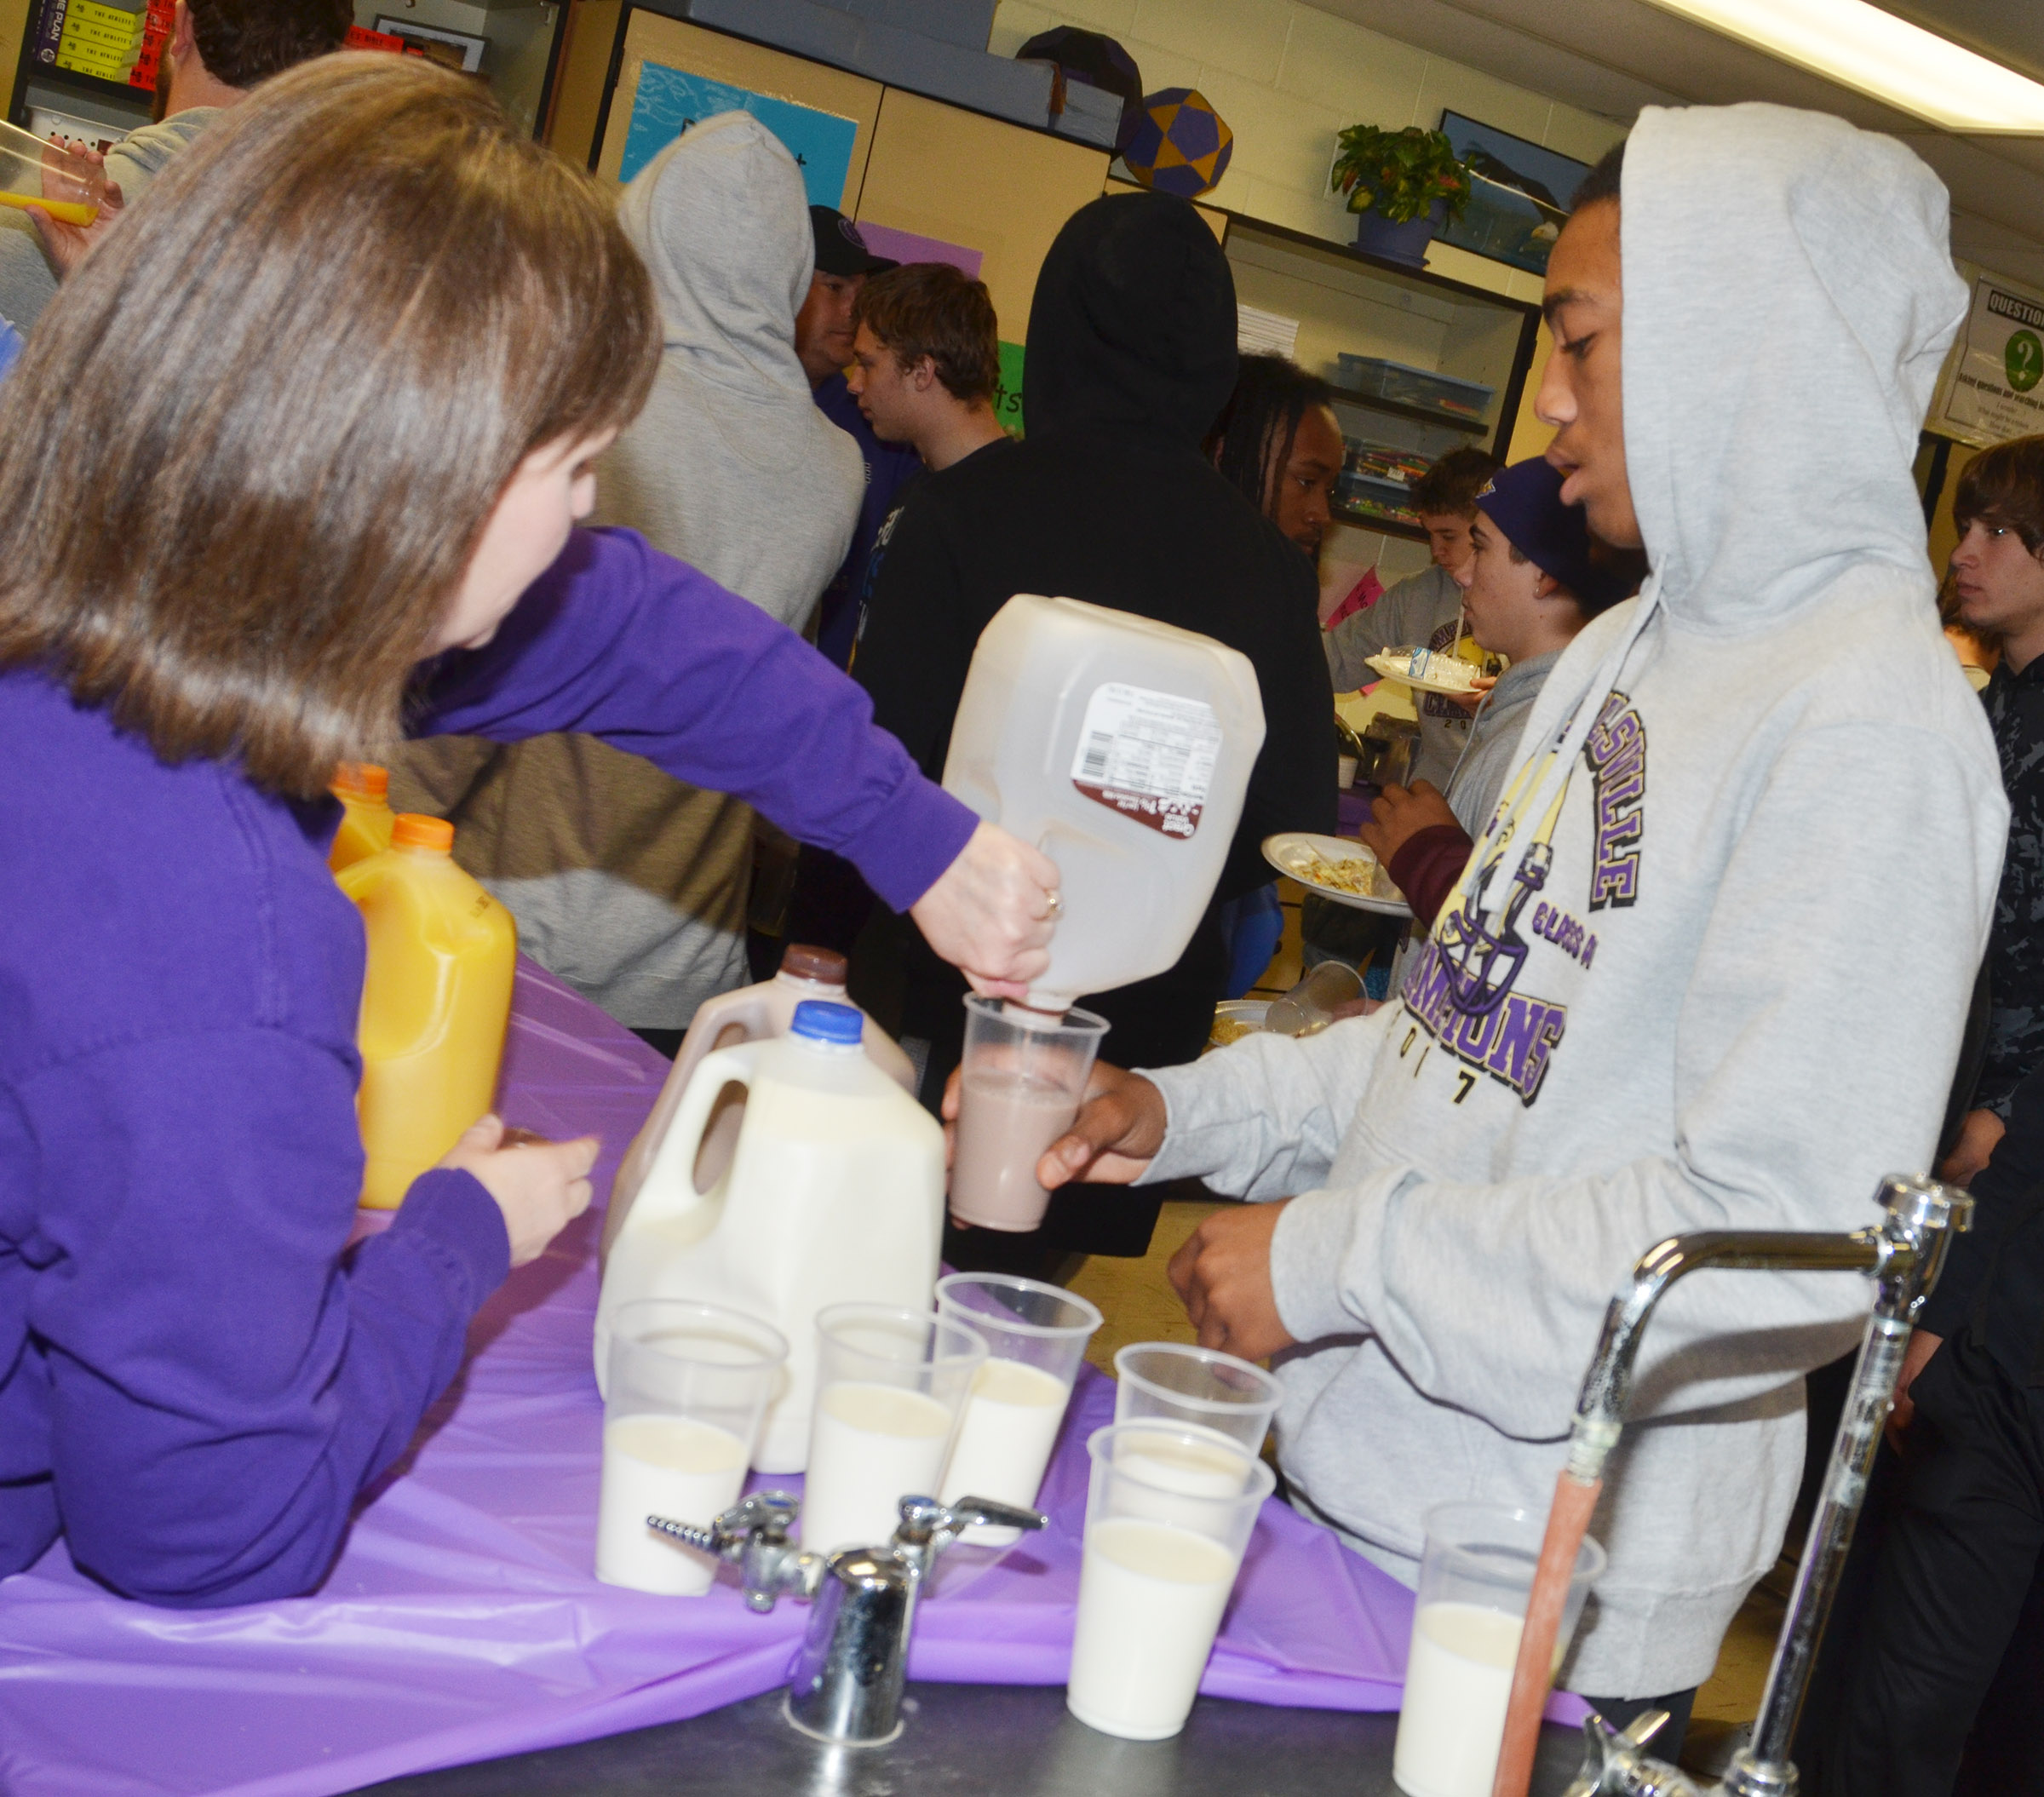 CHS sophomore Lathan Cubit is served milk.